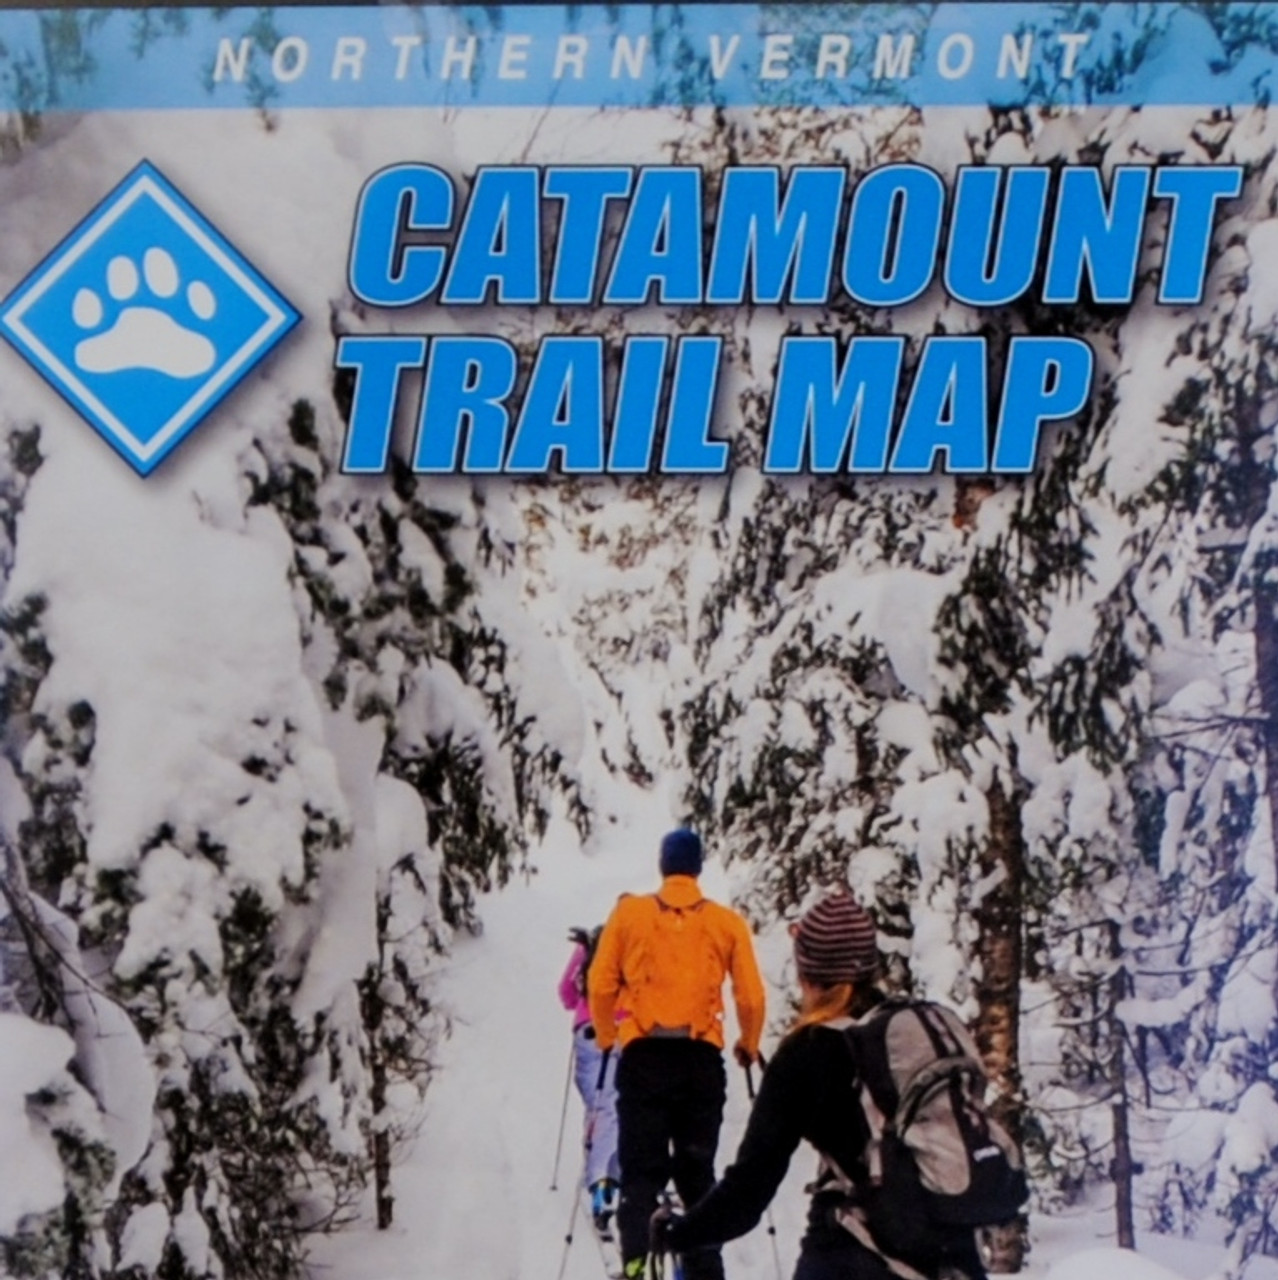 Northern Vermont Catamount Trail Map on map of cabela's, map of bass pro shops, map of vermont hiking trails,